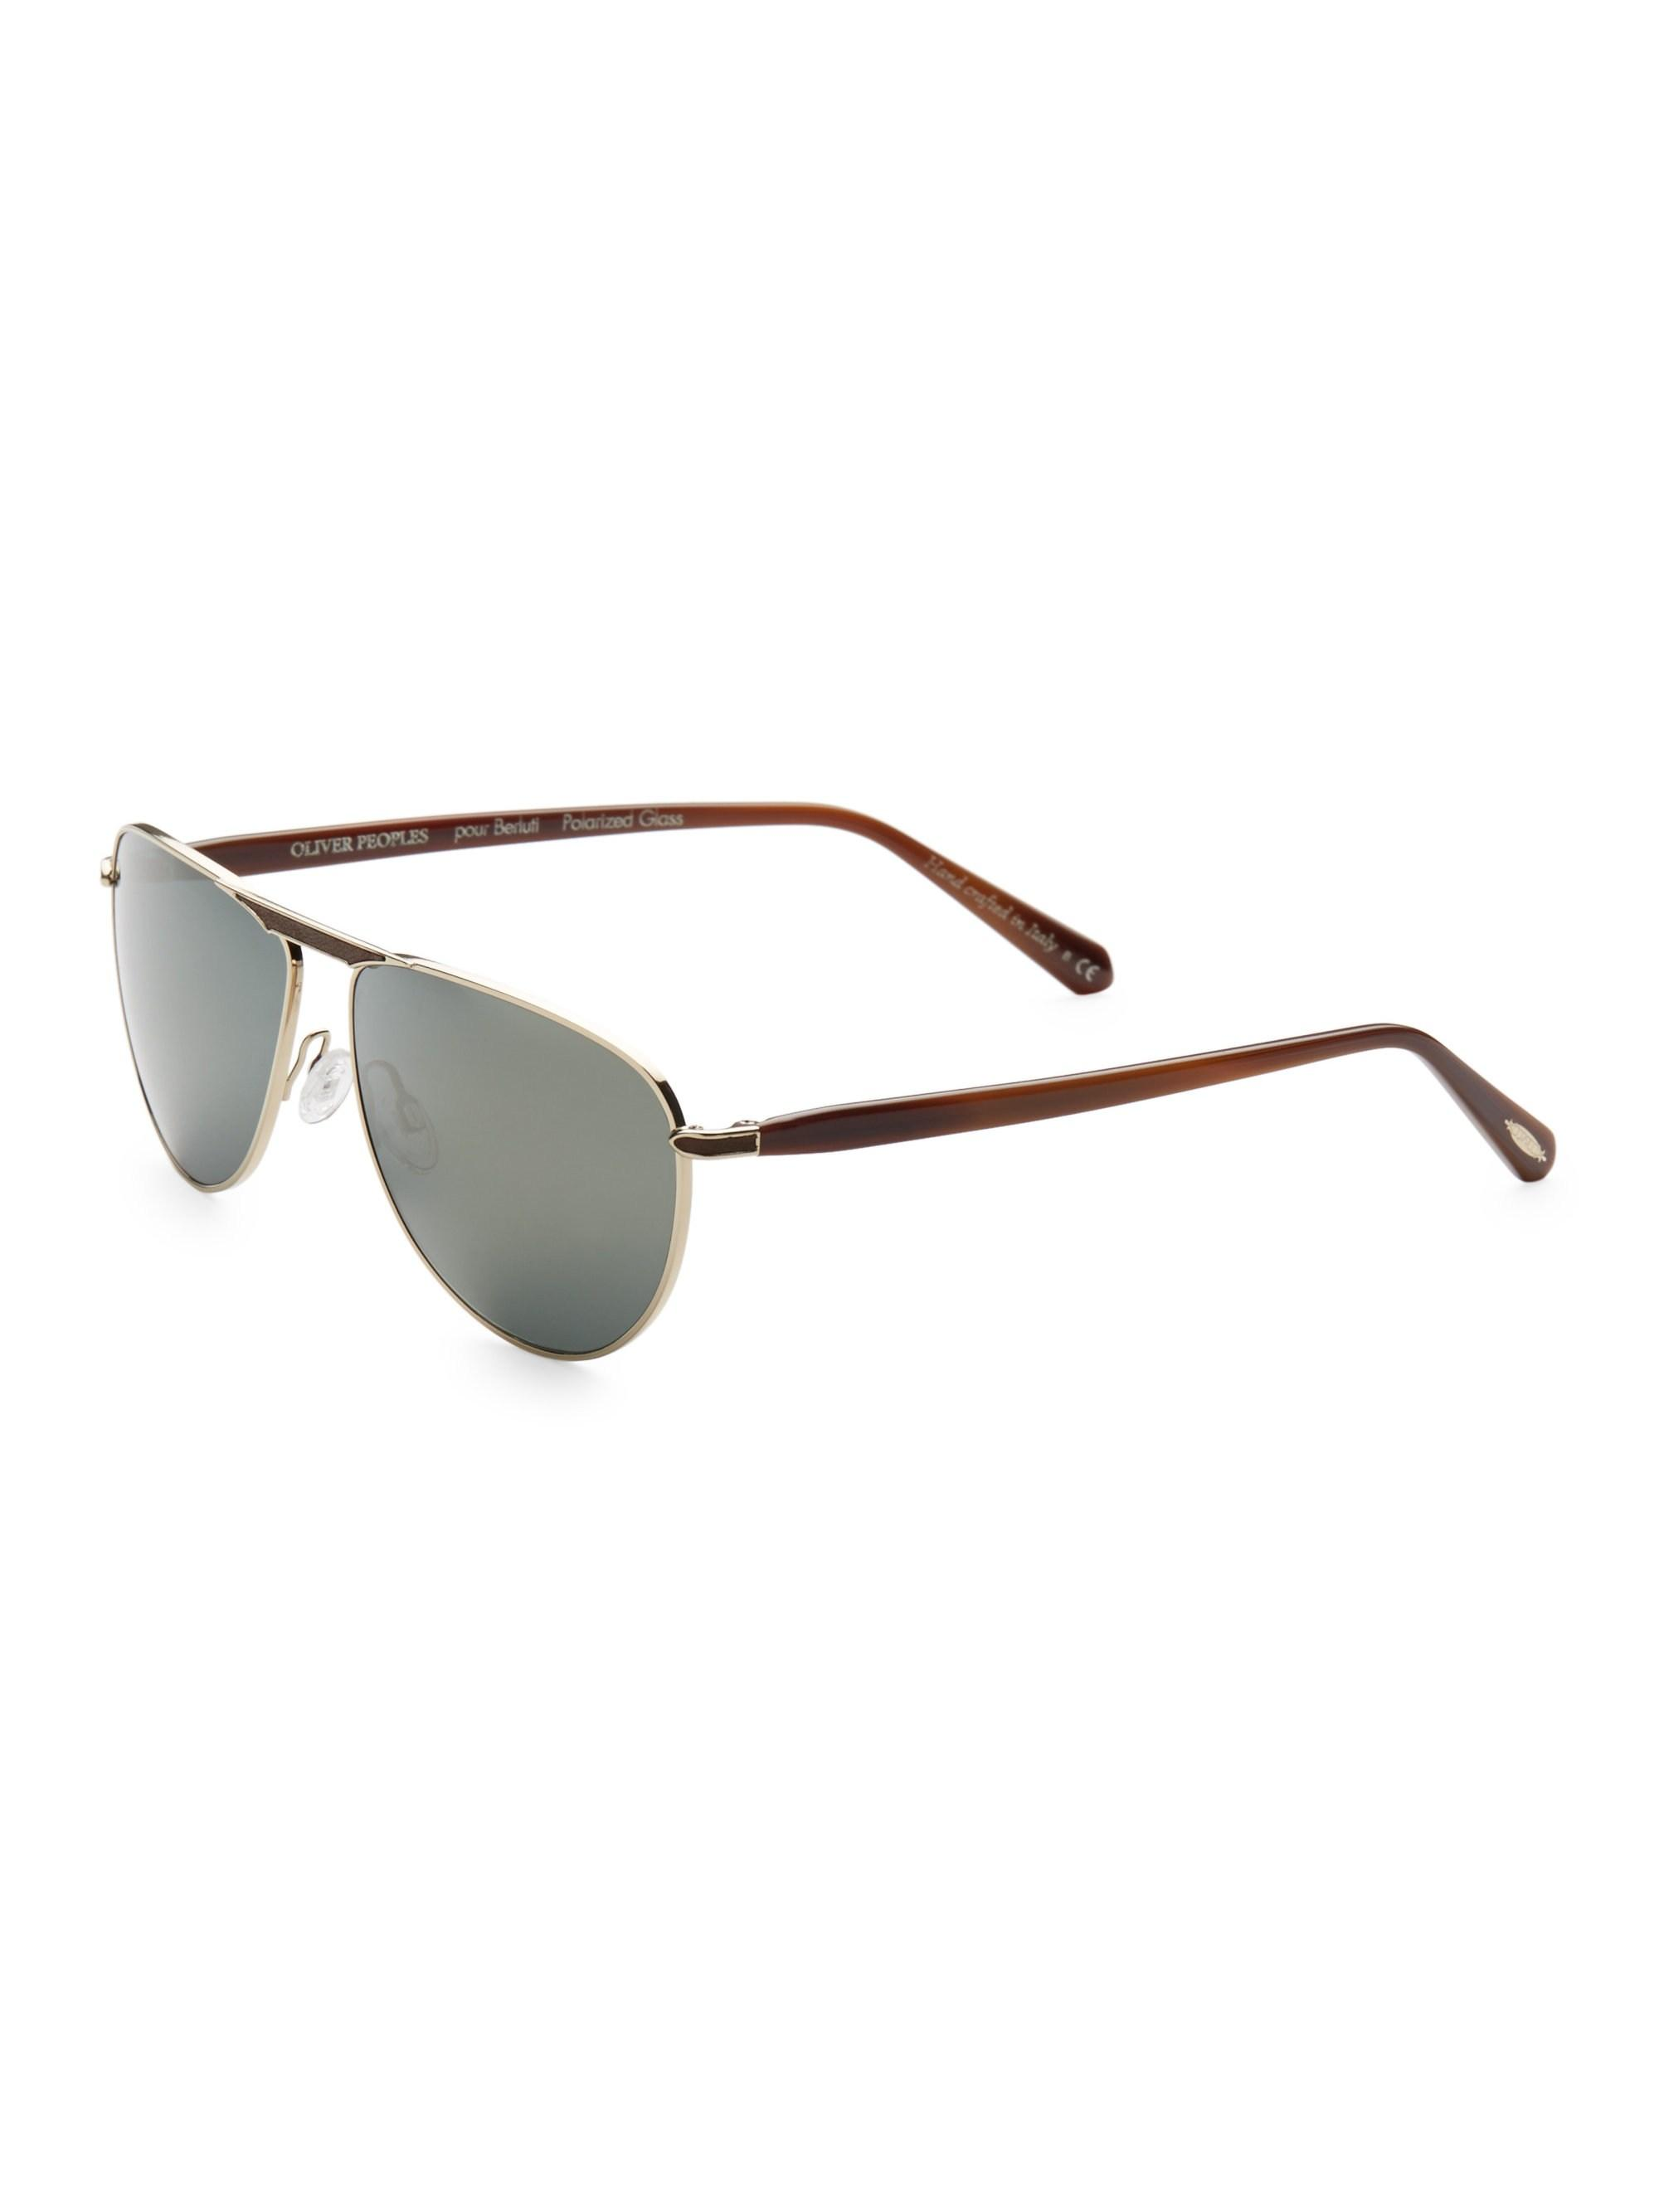 4a2b2ad8fd5 Oliver Peoples - Metallic Conduit 59mm Aviator Sunglasses for Men - Lyst.  View fullscreen